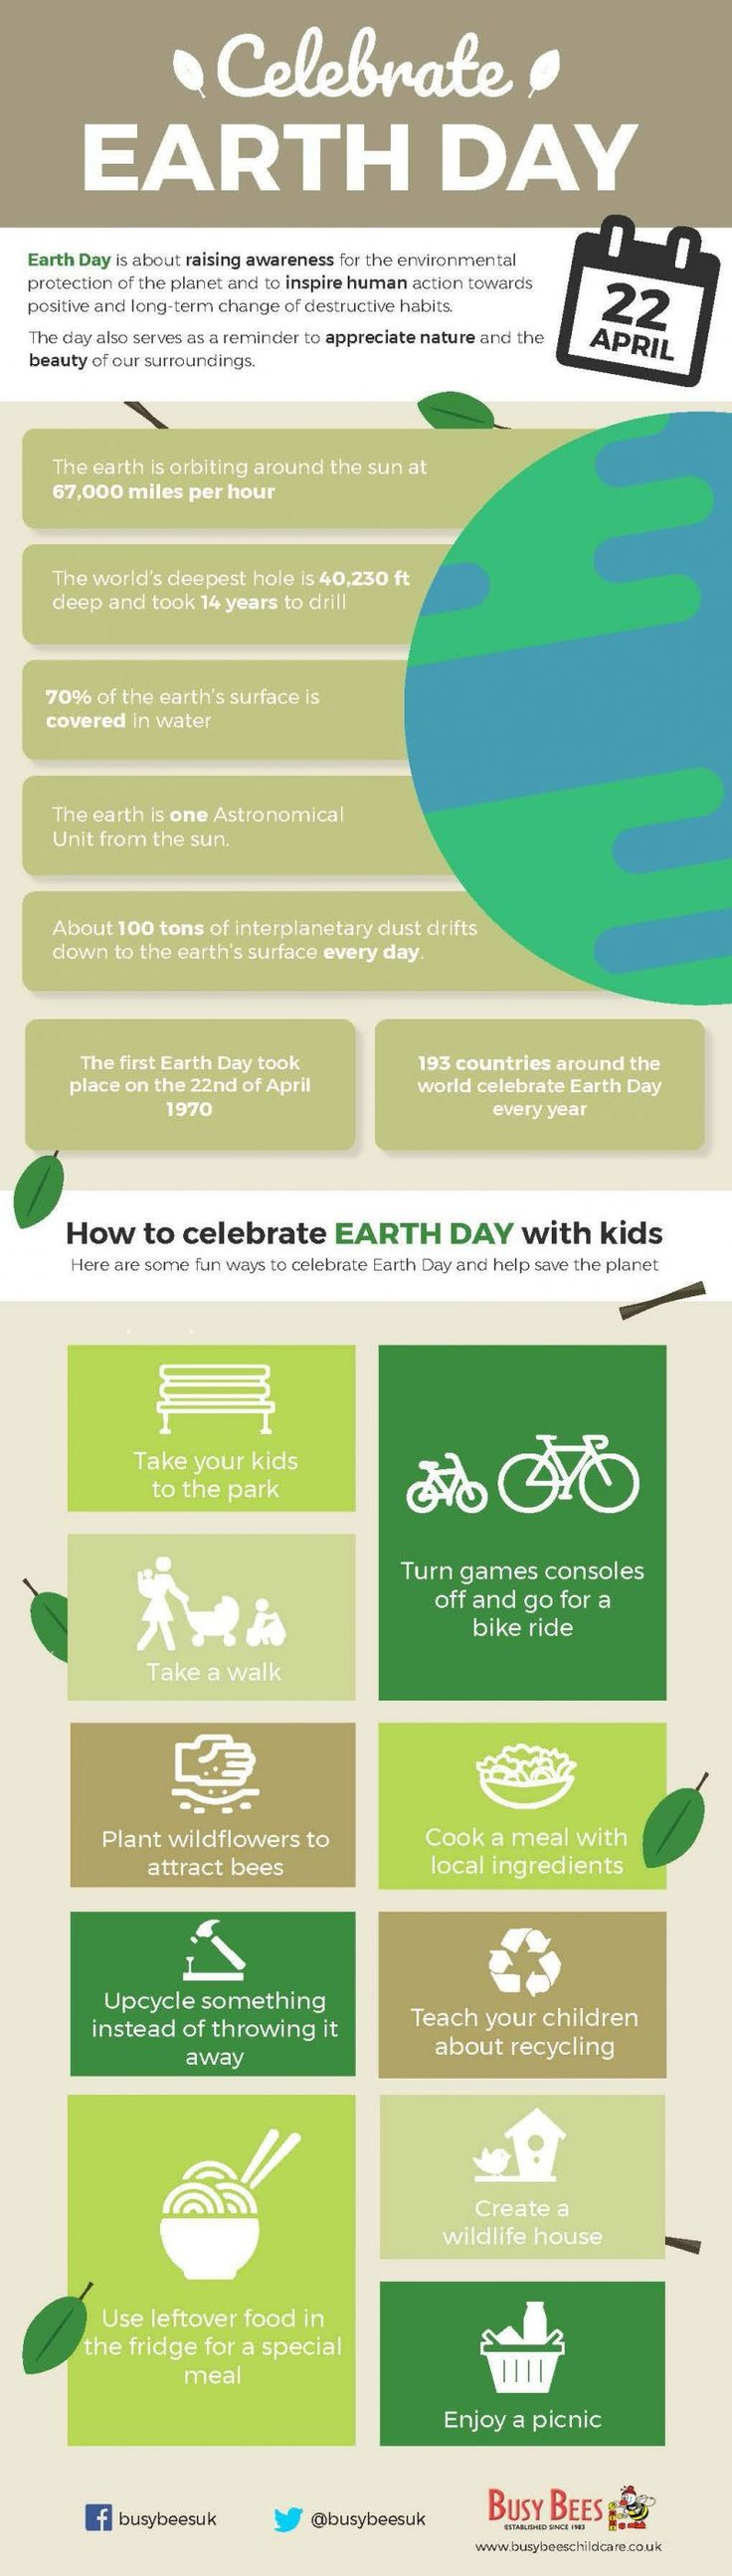 Celebrating Earth Day as a Family